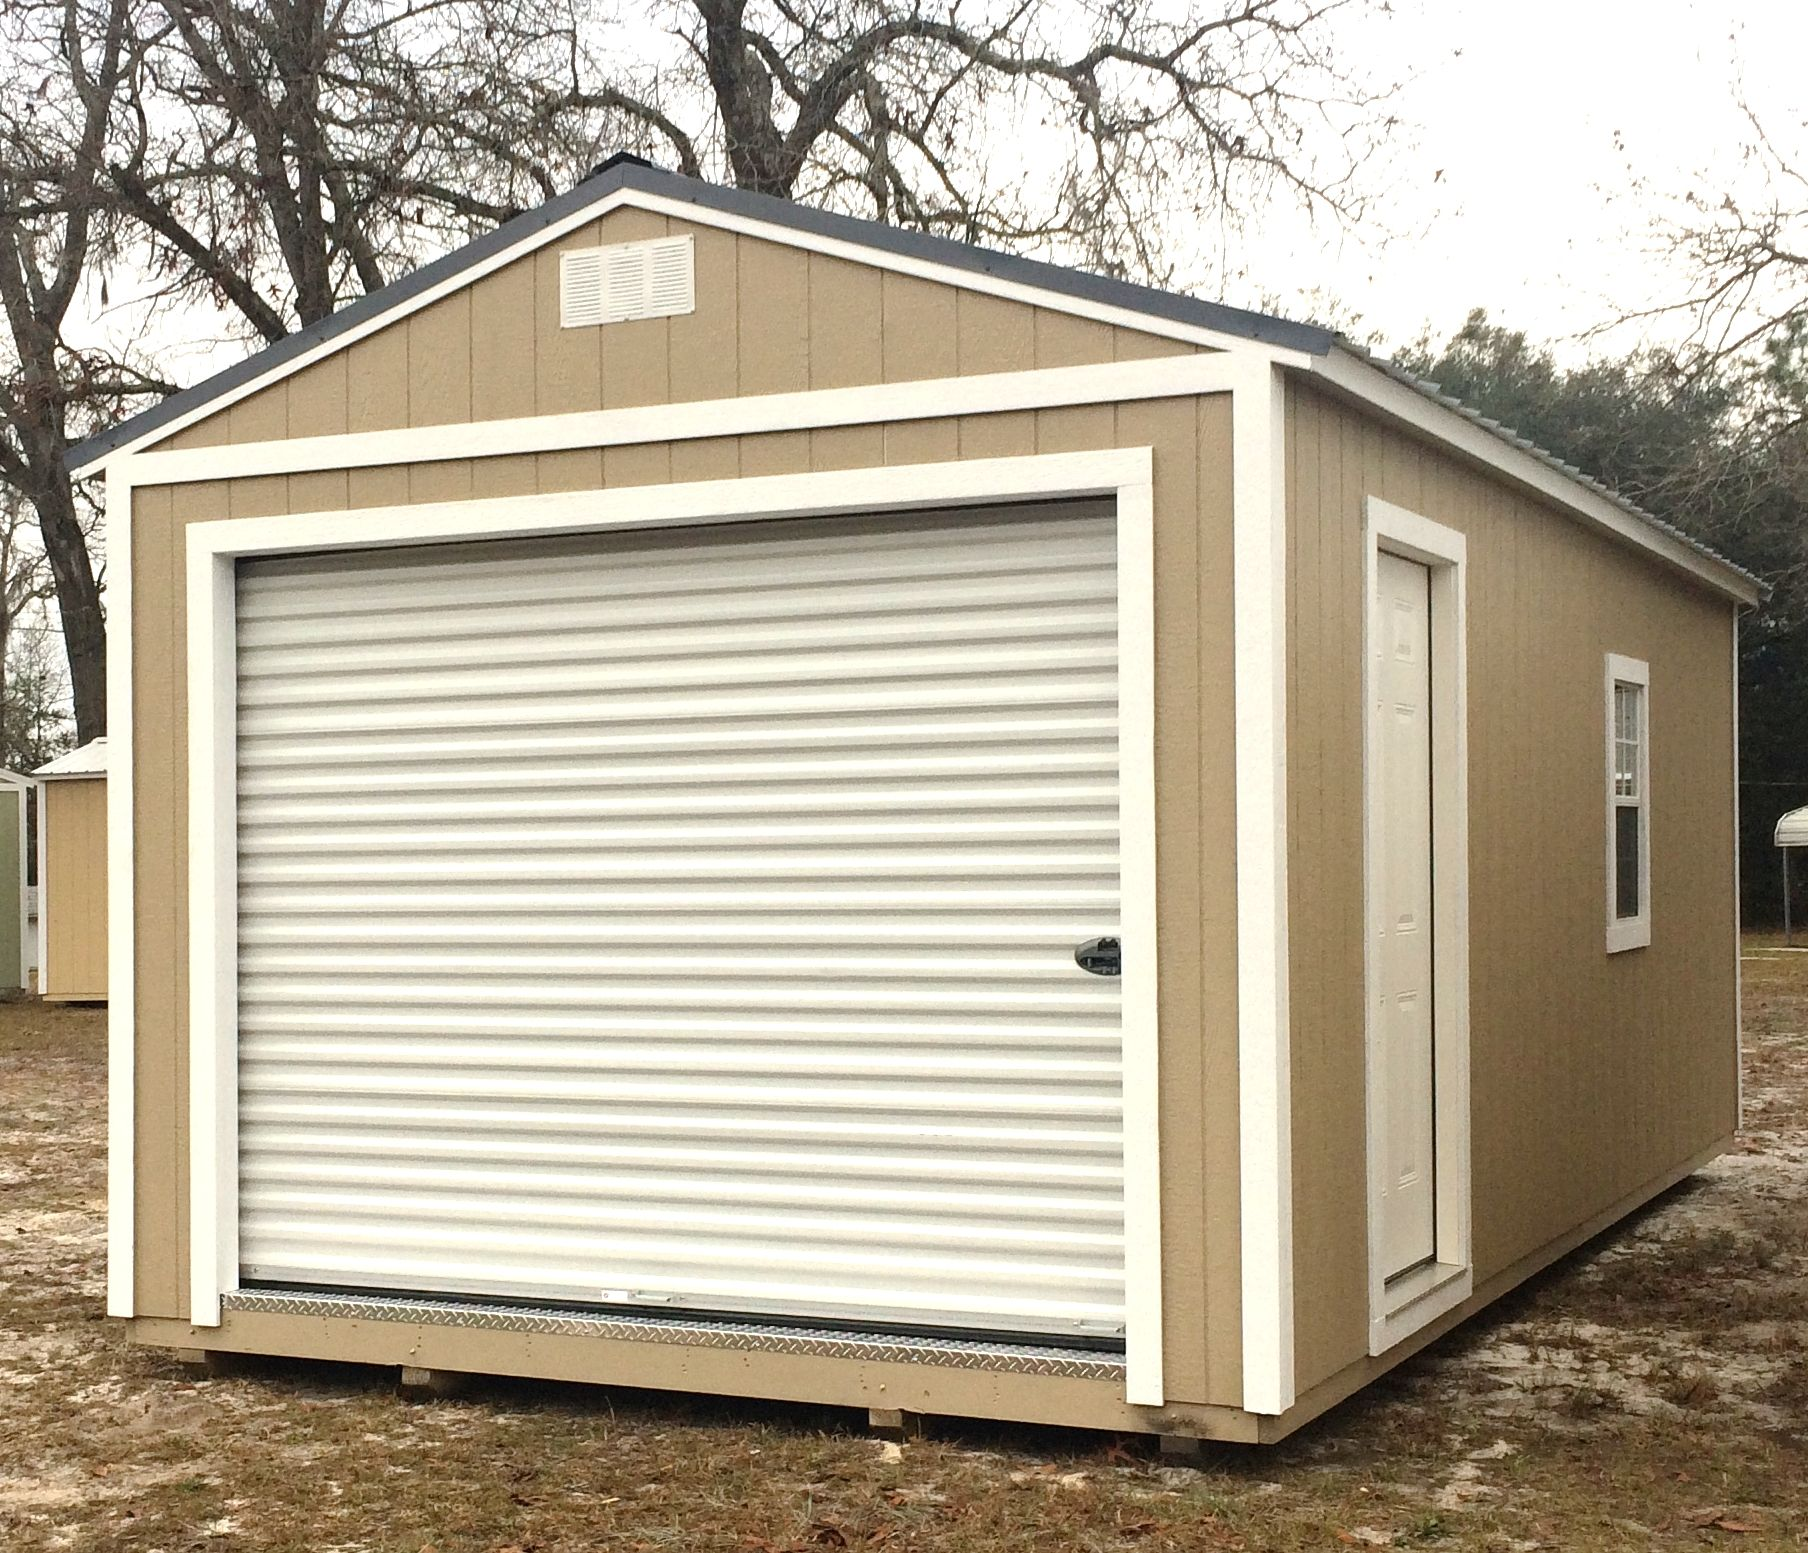 Coastal Portable Buildings Portable Garage 12x24 In Sw Taupe Coastalportablebuildings Garage B Portable Buildings Portable Garage Outdoor Storage Solutions